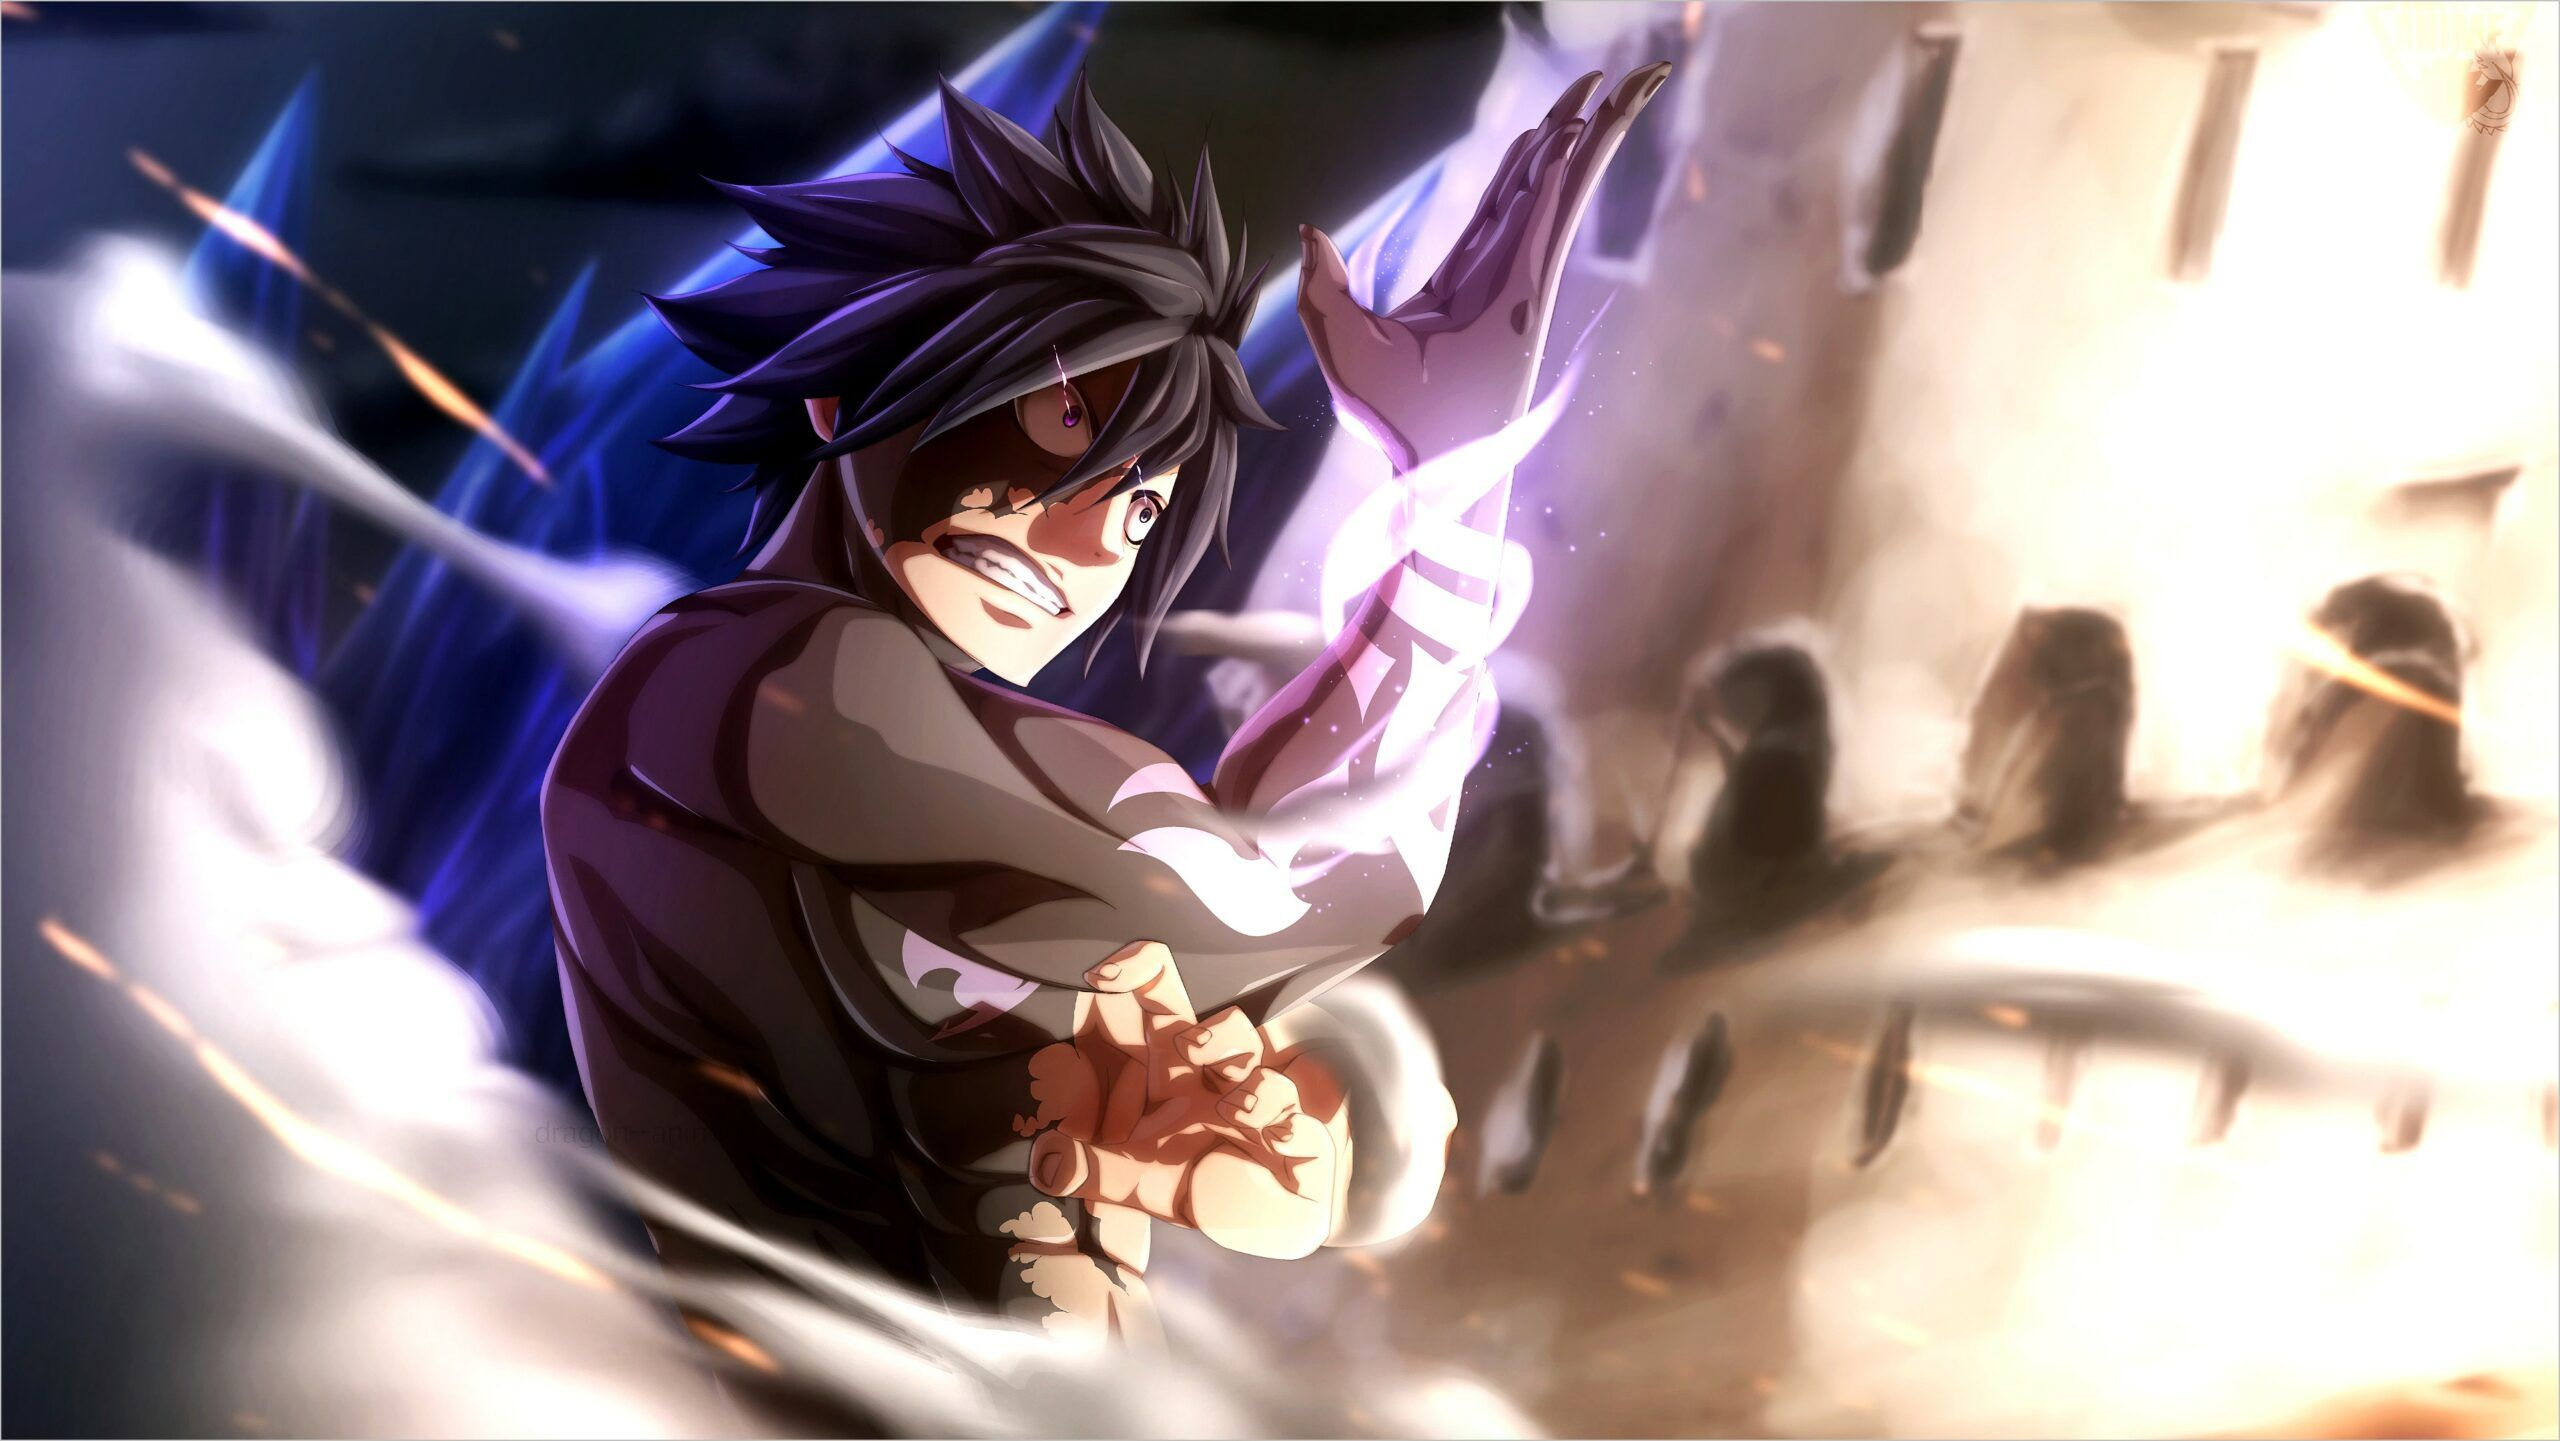 Fairy Tail Grey 4k Wallpaper In 2020 Fairy Tail Anime Fairy Tail Gray Anime